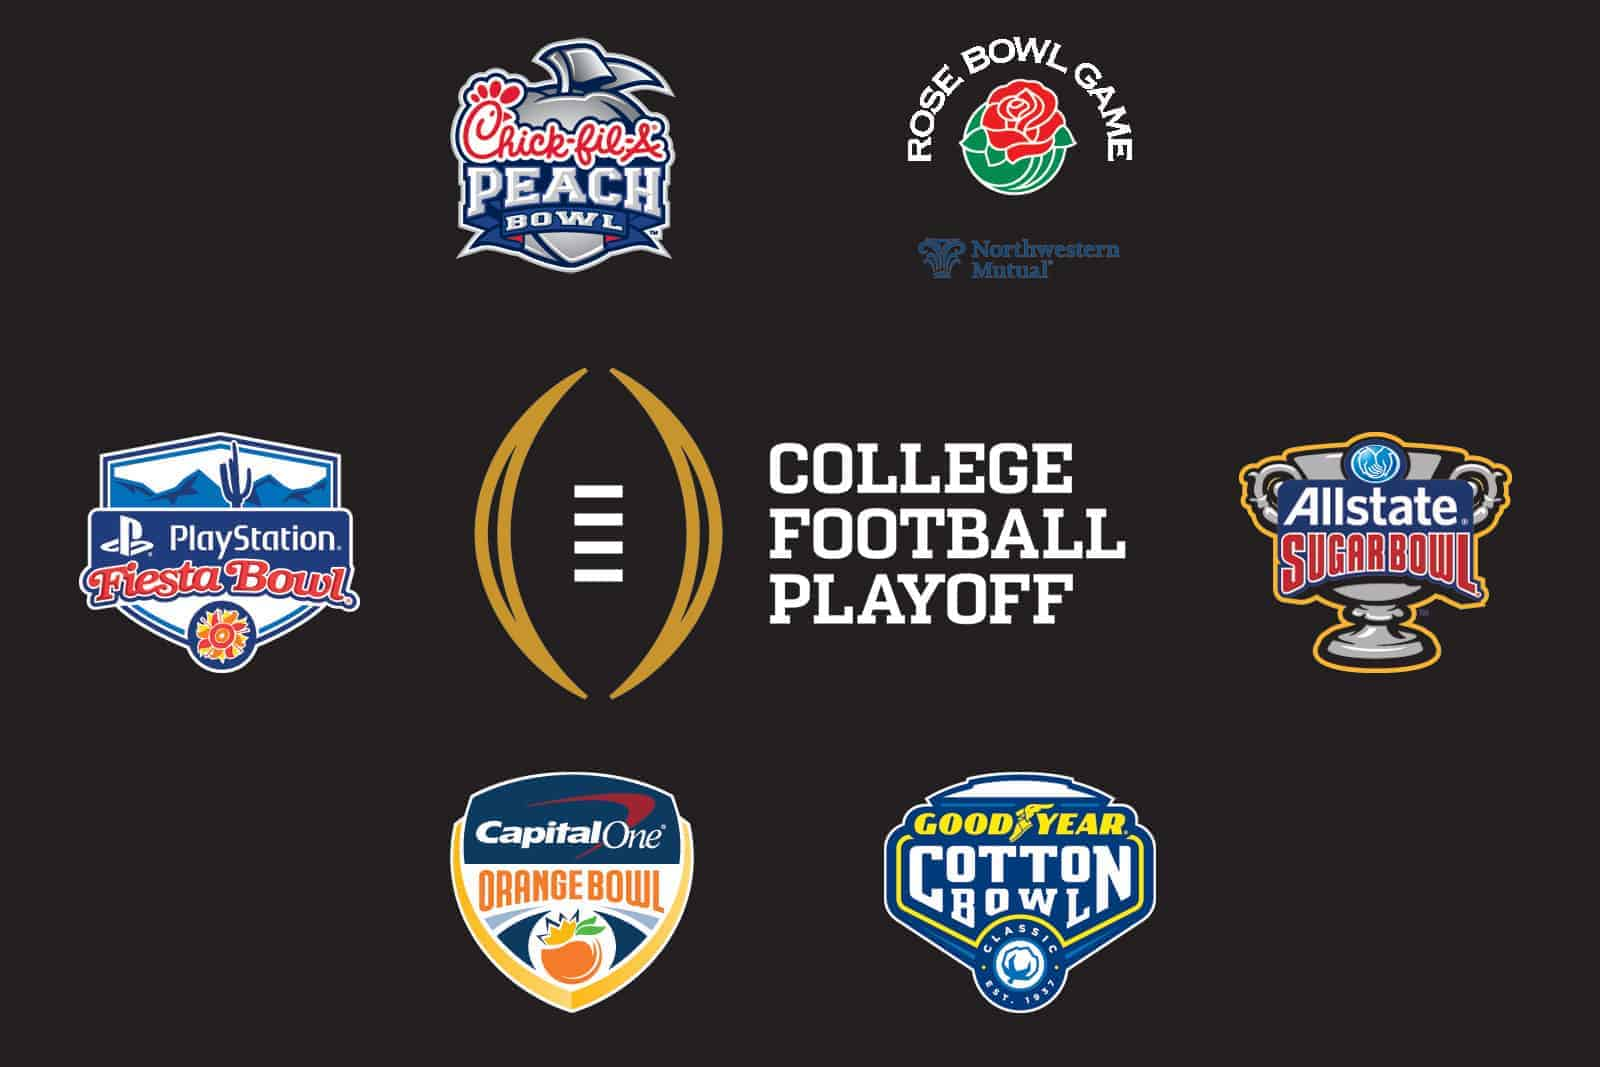 College Football Playoff: 2019 New Year's Six bowls set